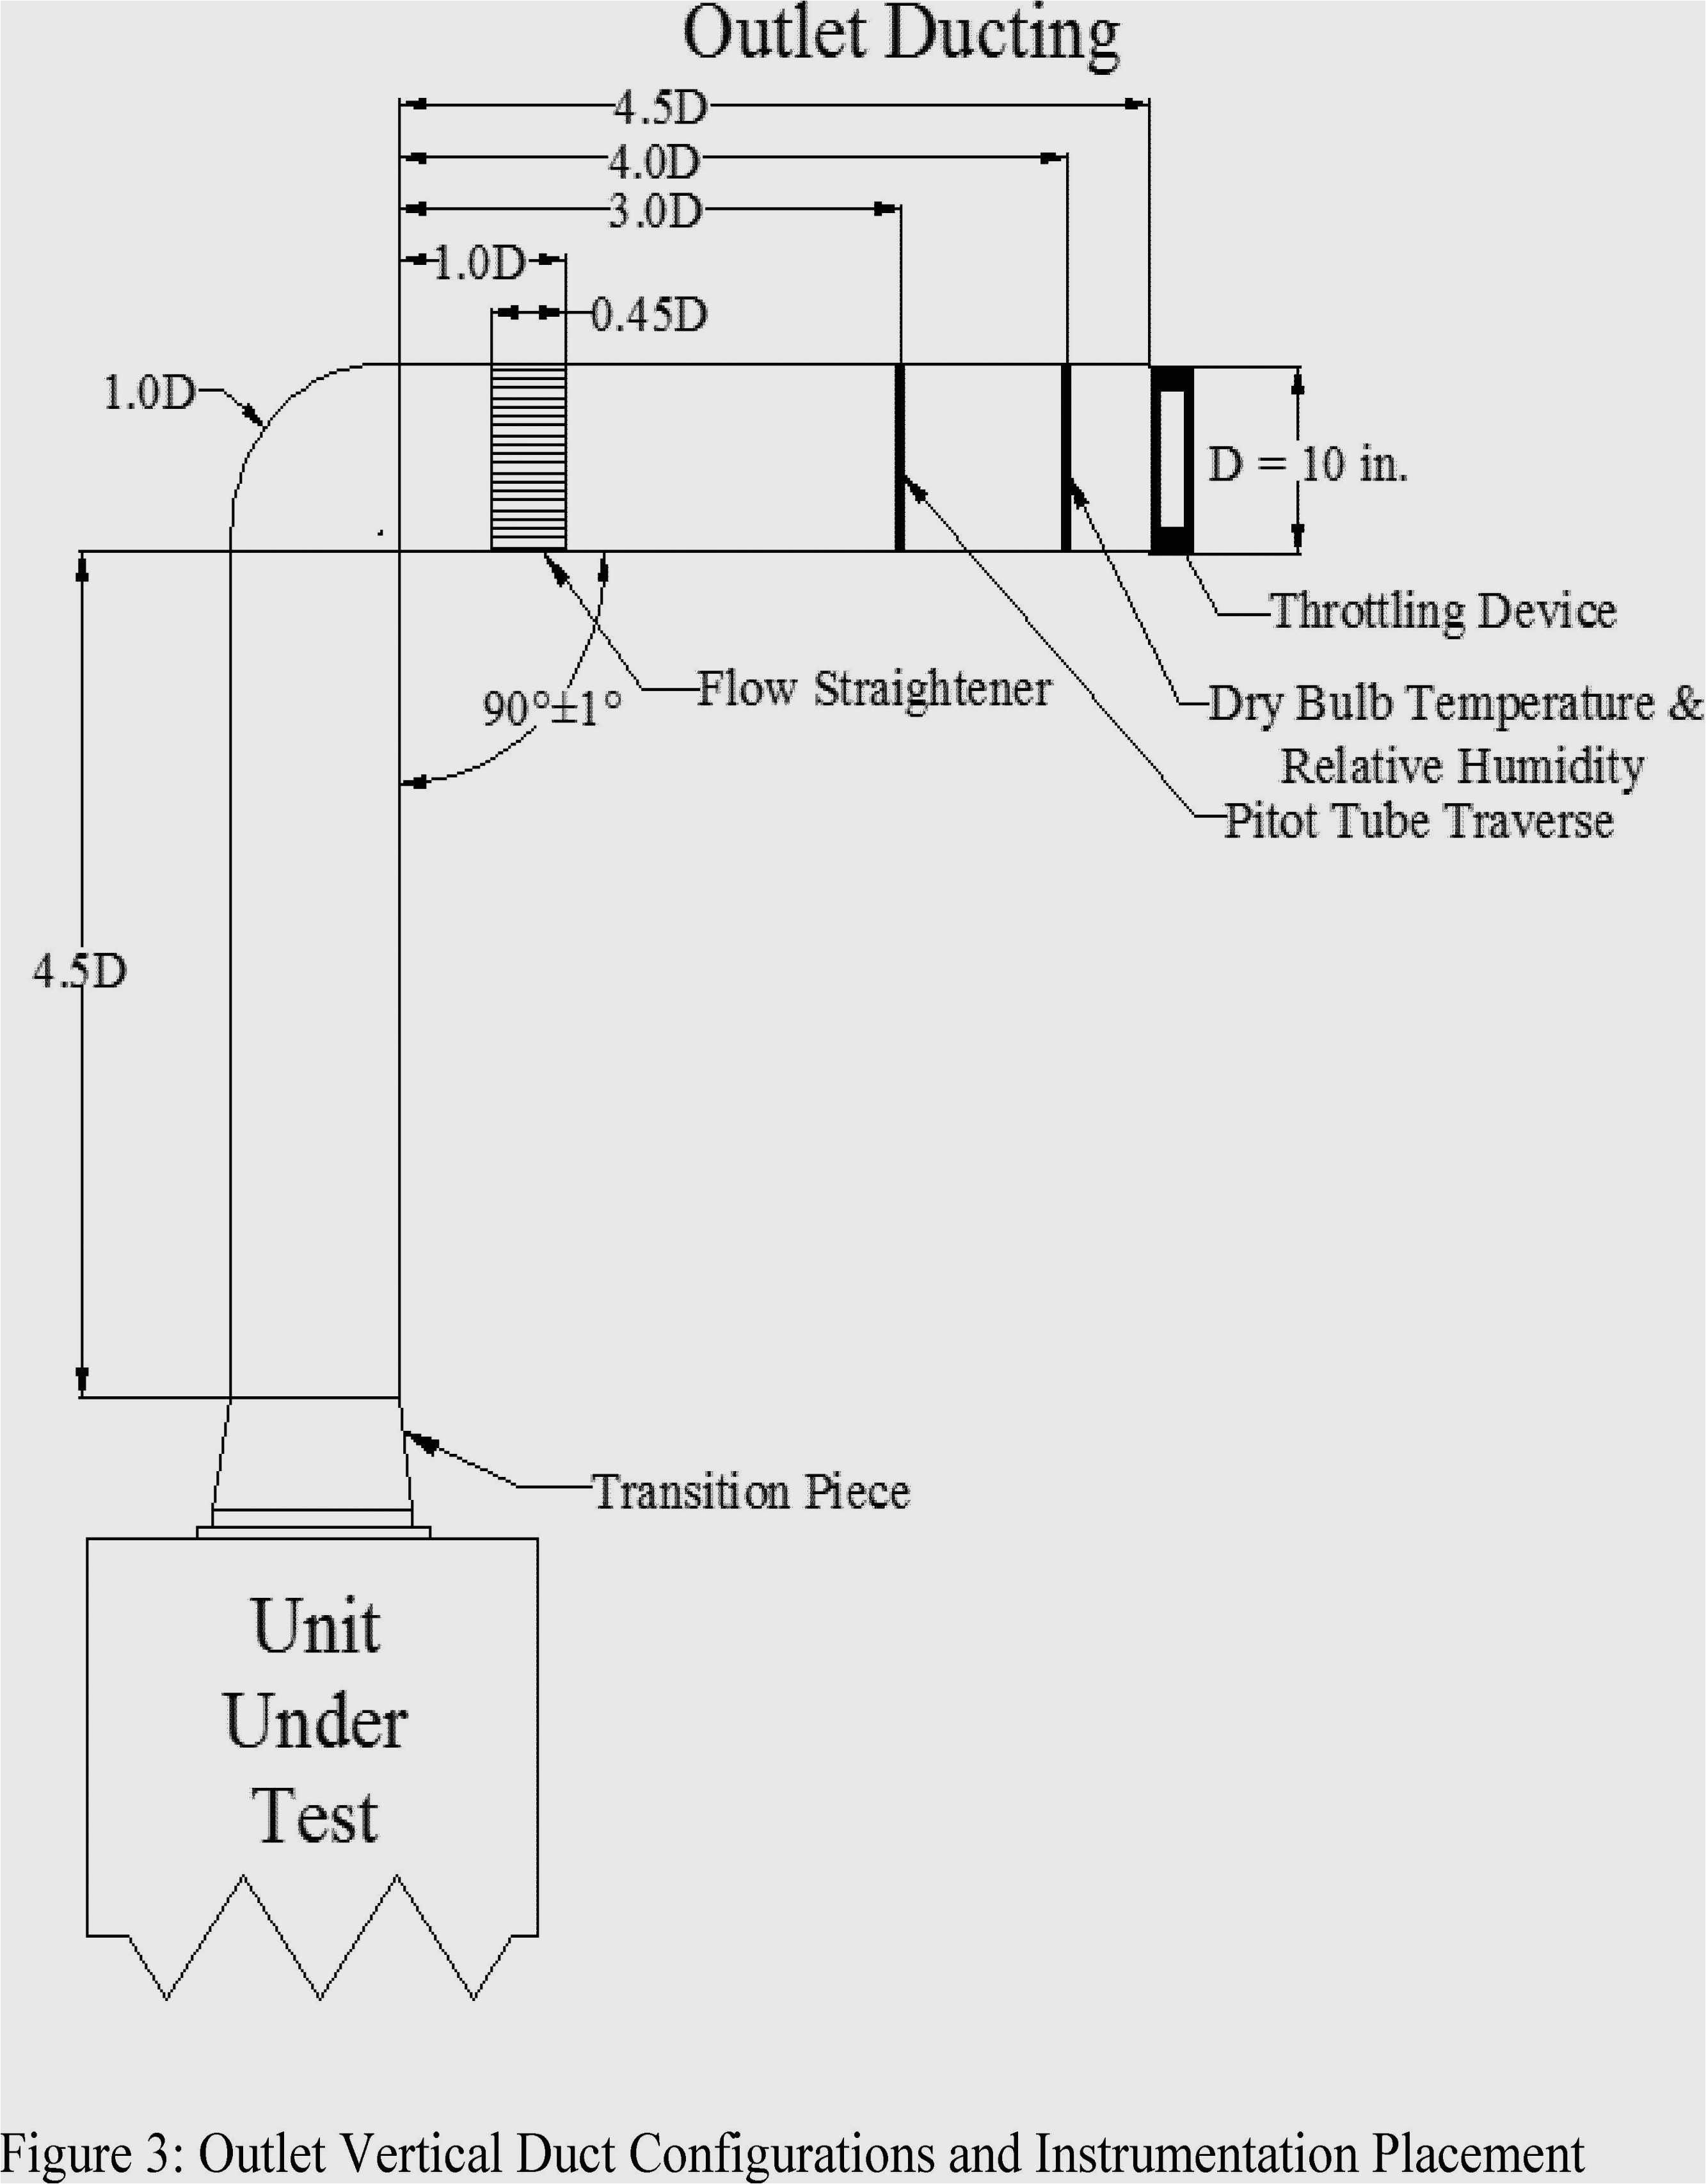 cat 5 network wiring wiring diagram databasecat5 cable wiring